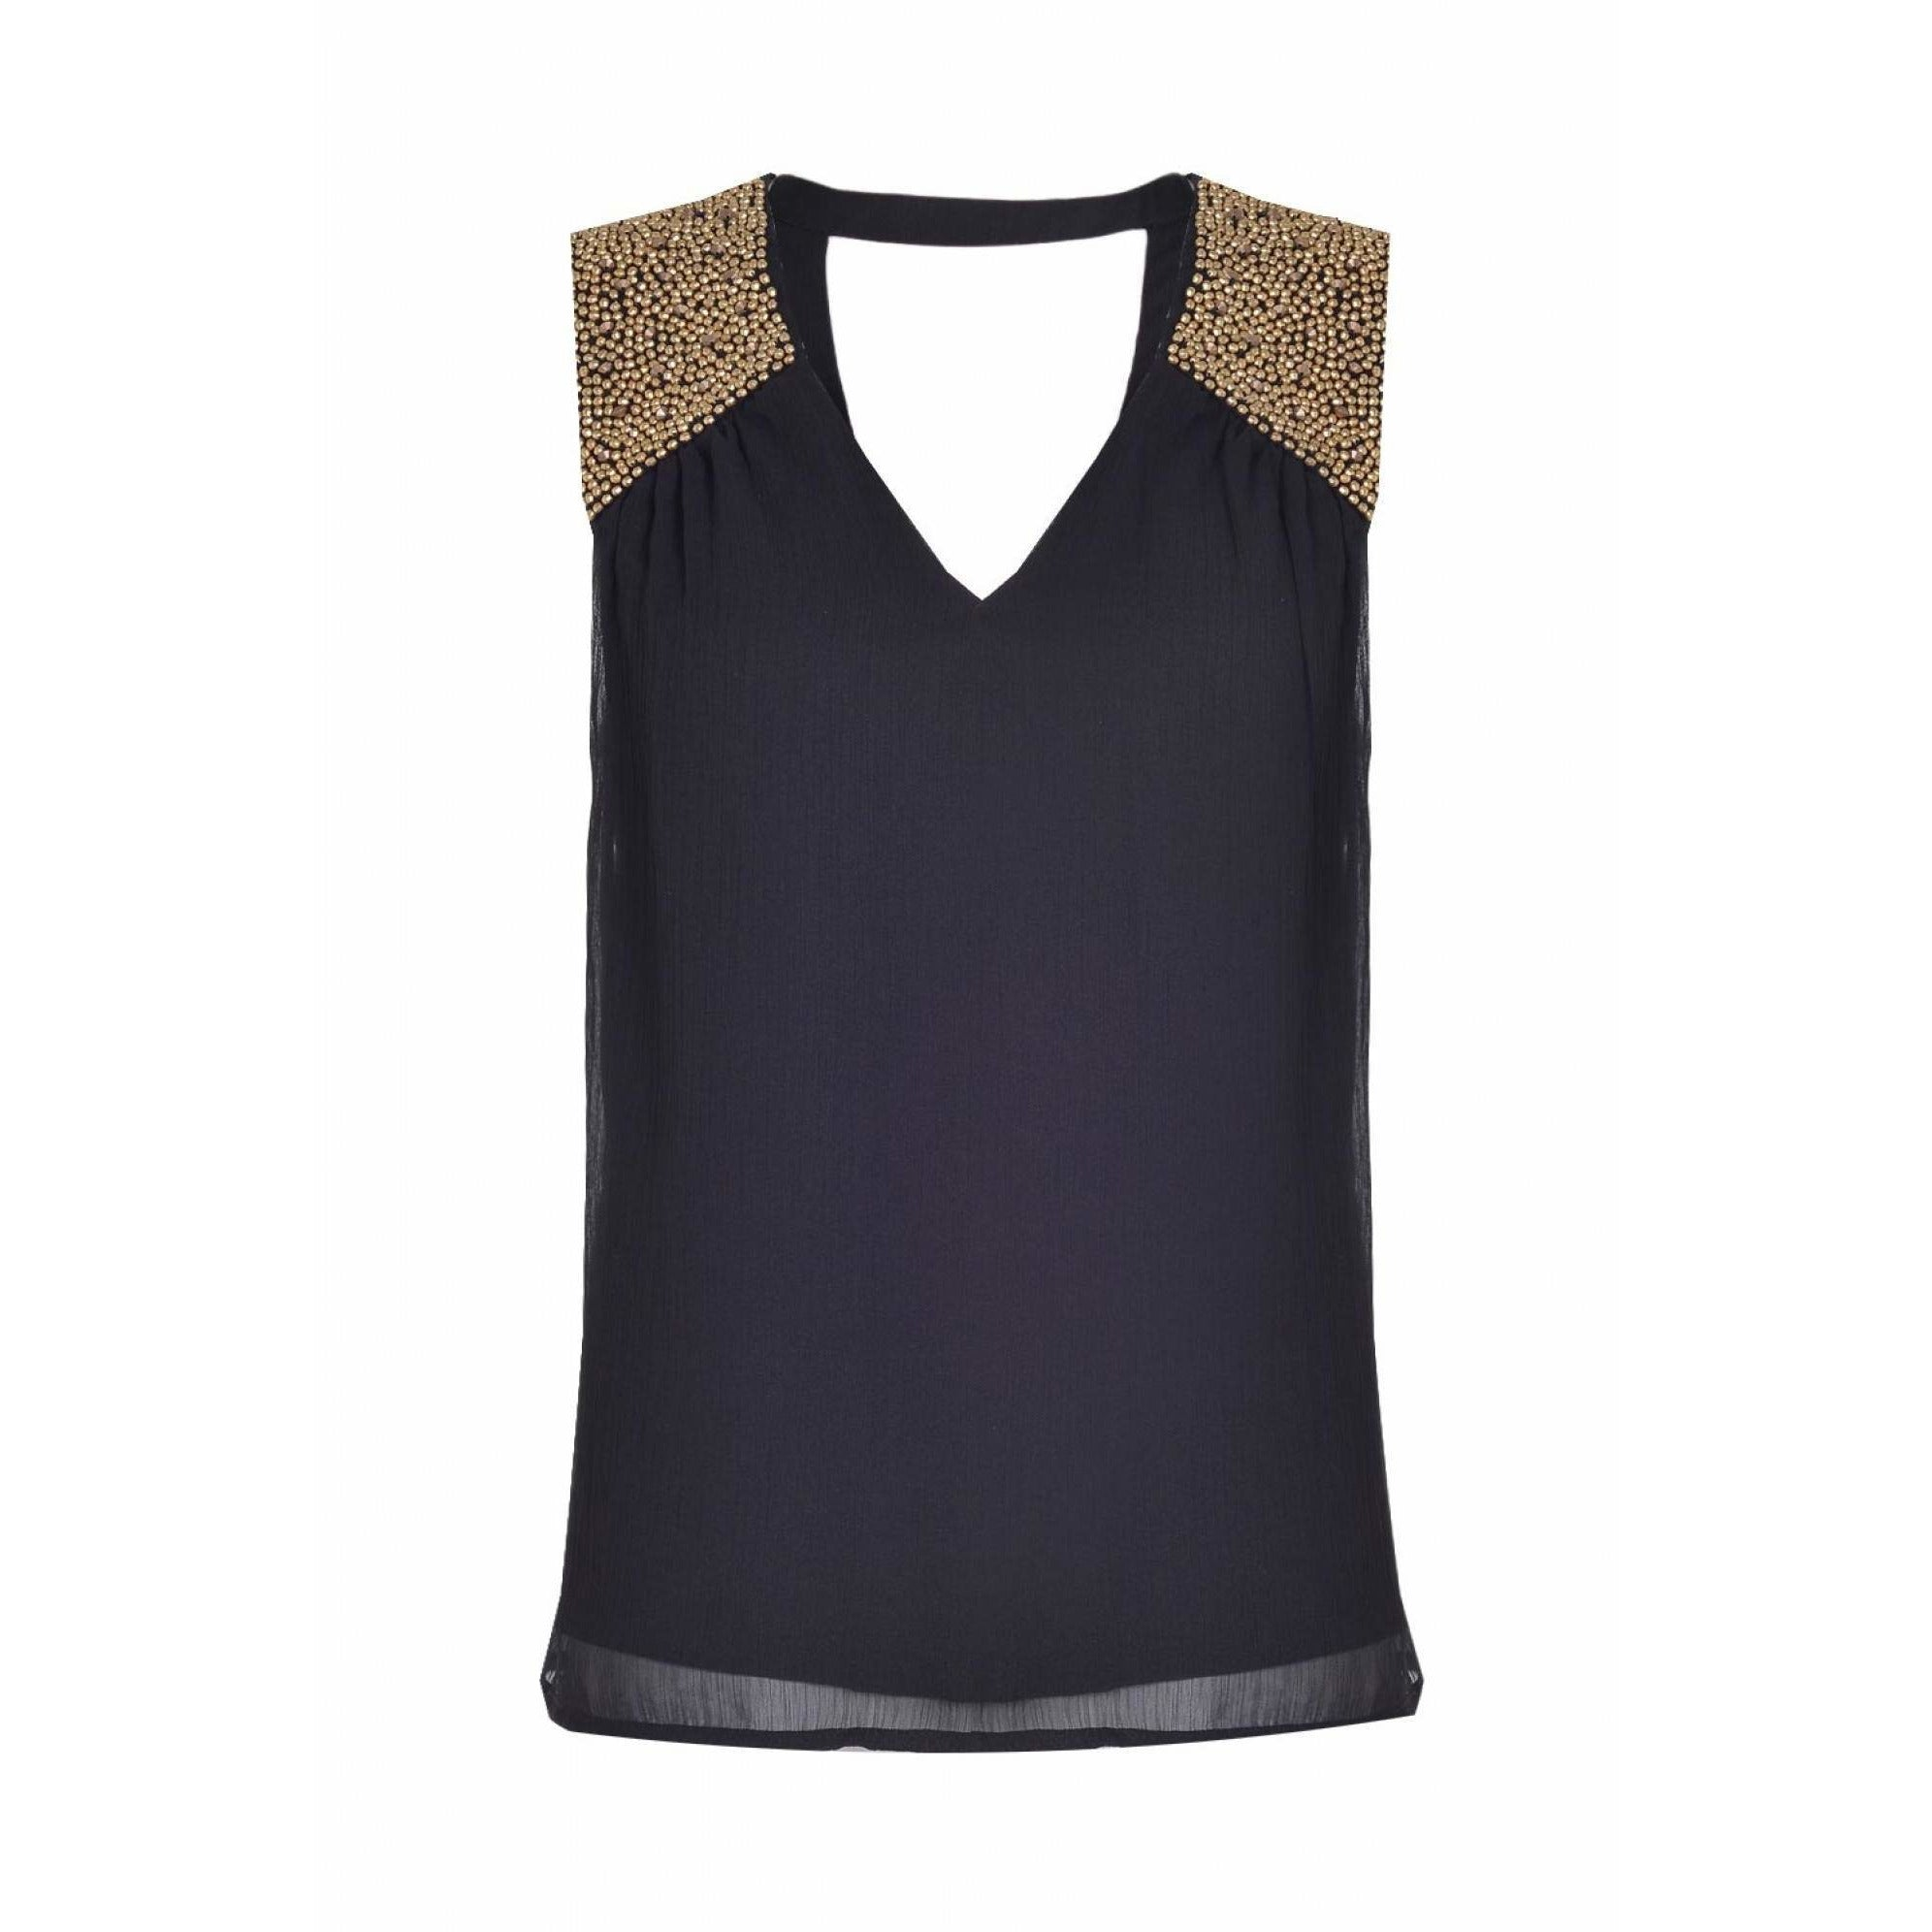 VERO MODA - Chiffon Sleeveless Top